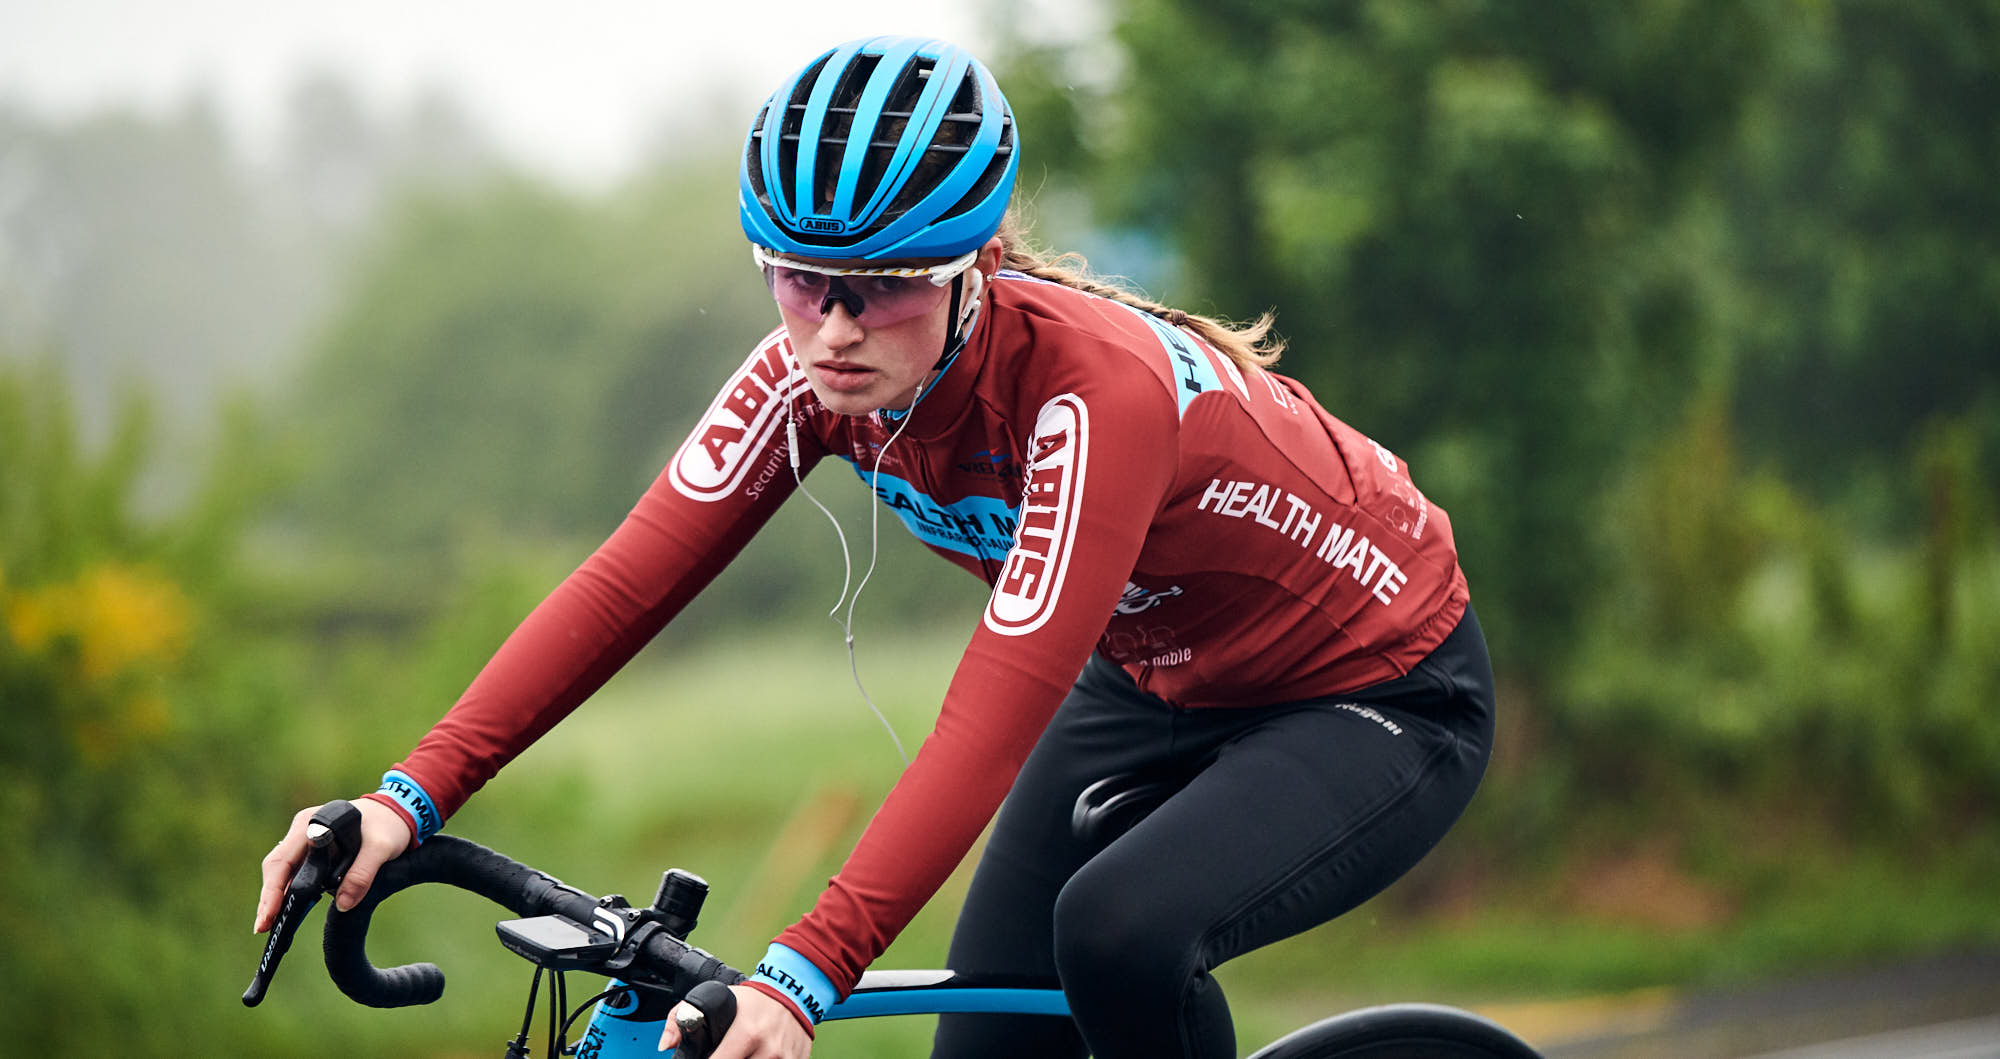 Elodie Kuijper riding her road bike in the Ardennes